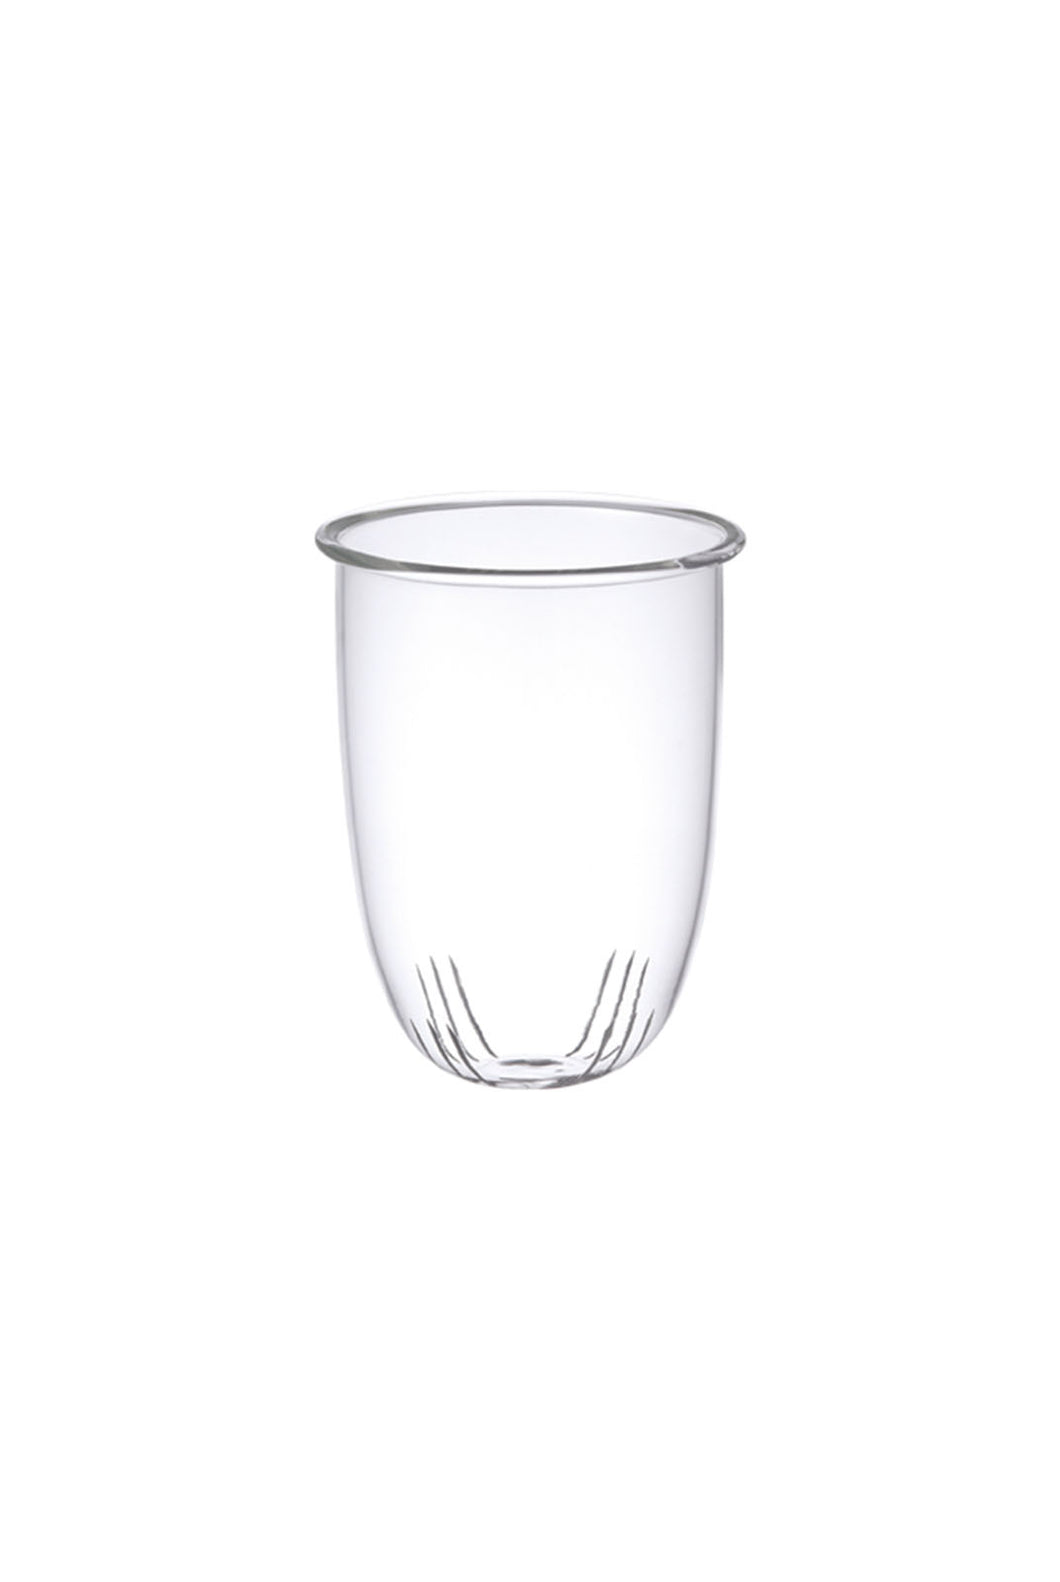 Kinto - Unitea - Strainer L- 720ml - Transparent